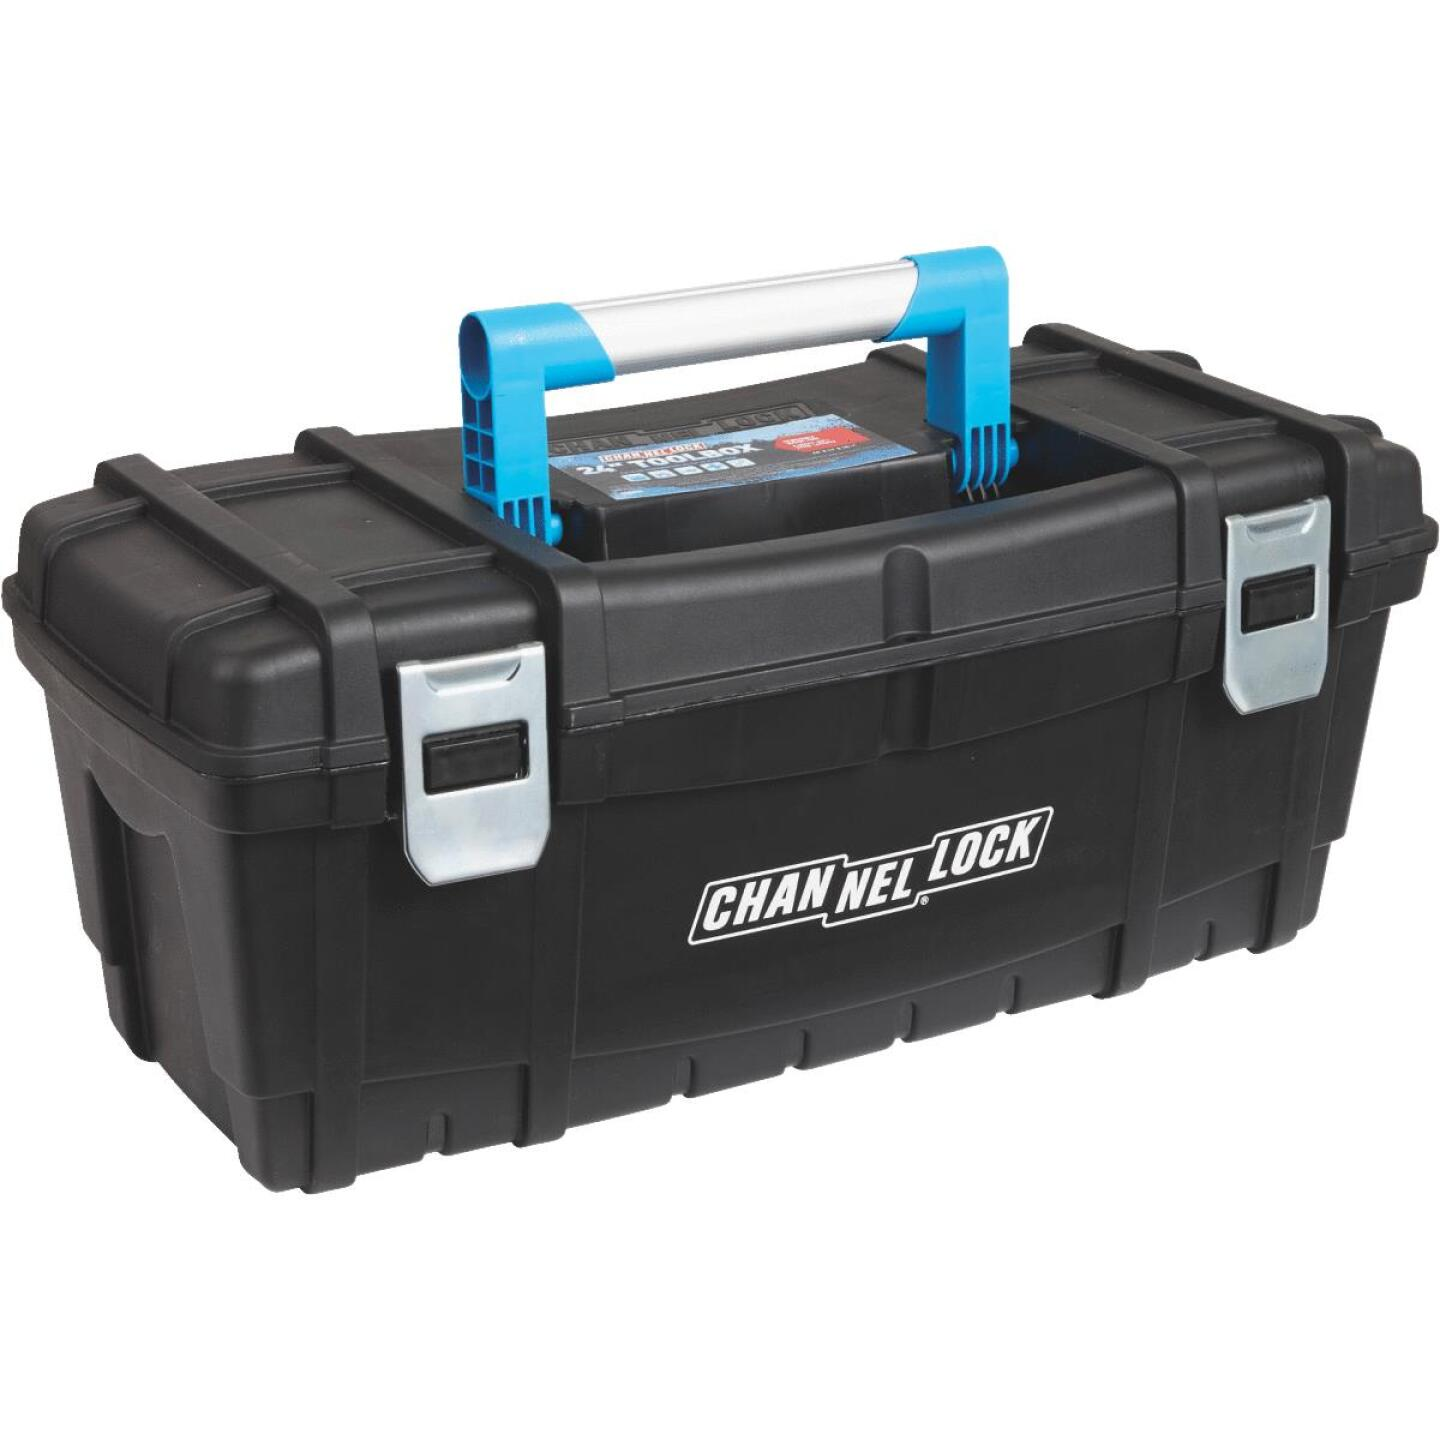 Channellock 24 In. Toolbox Image 3